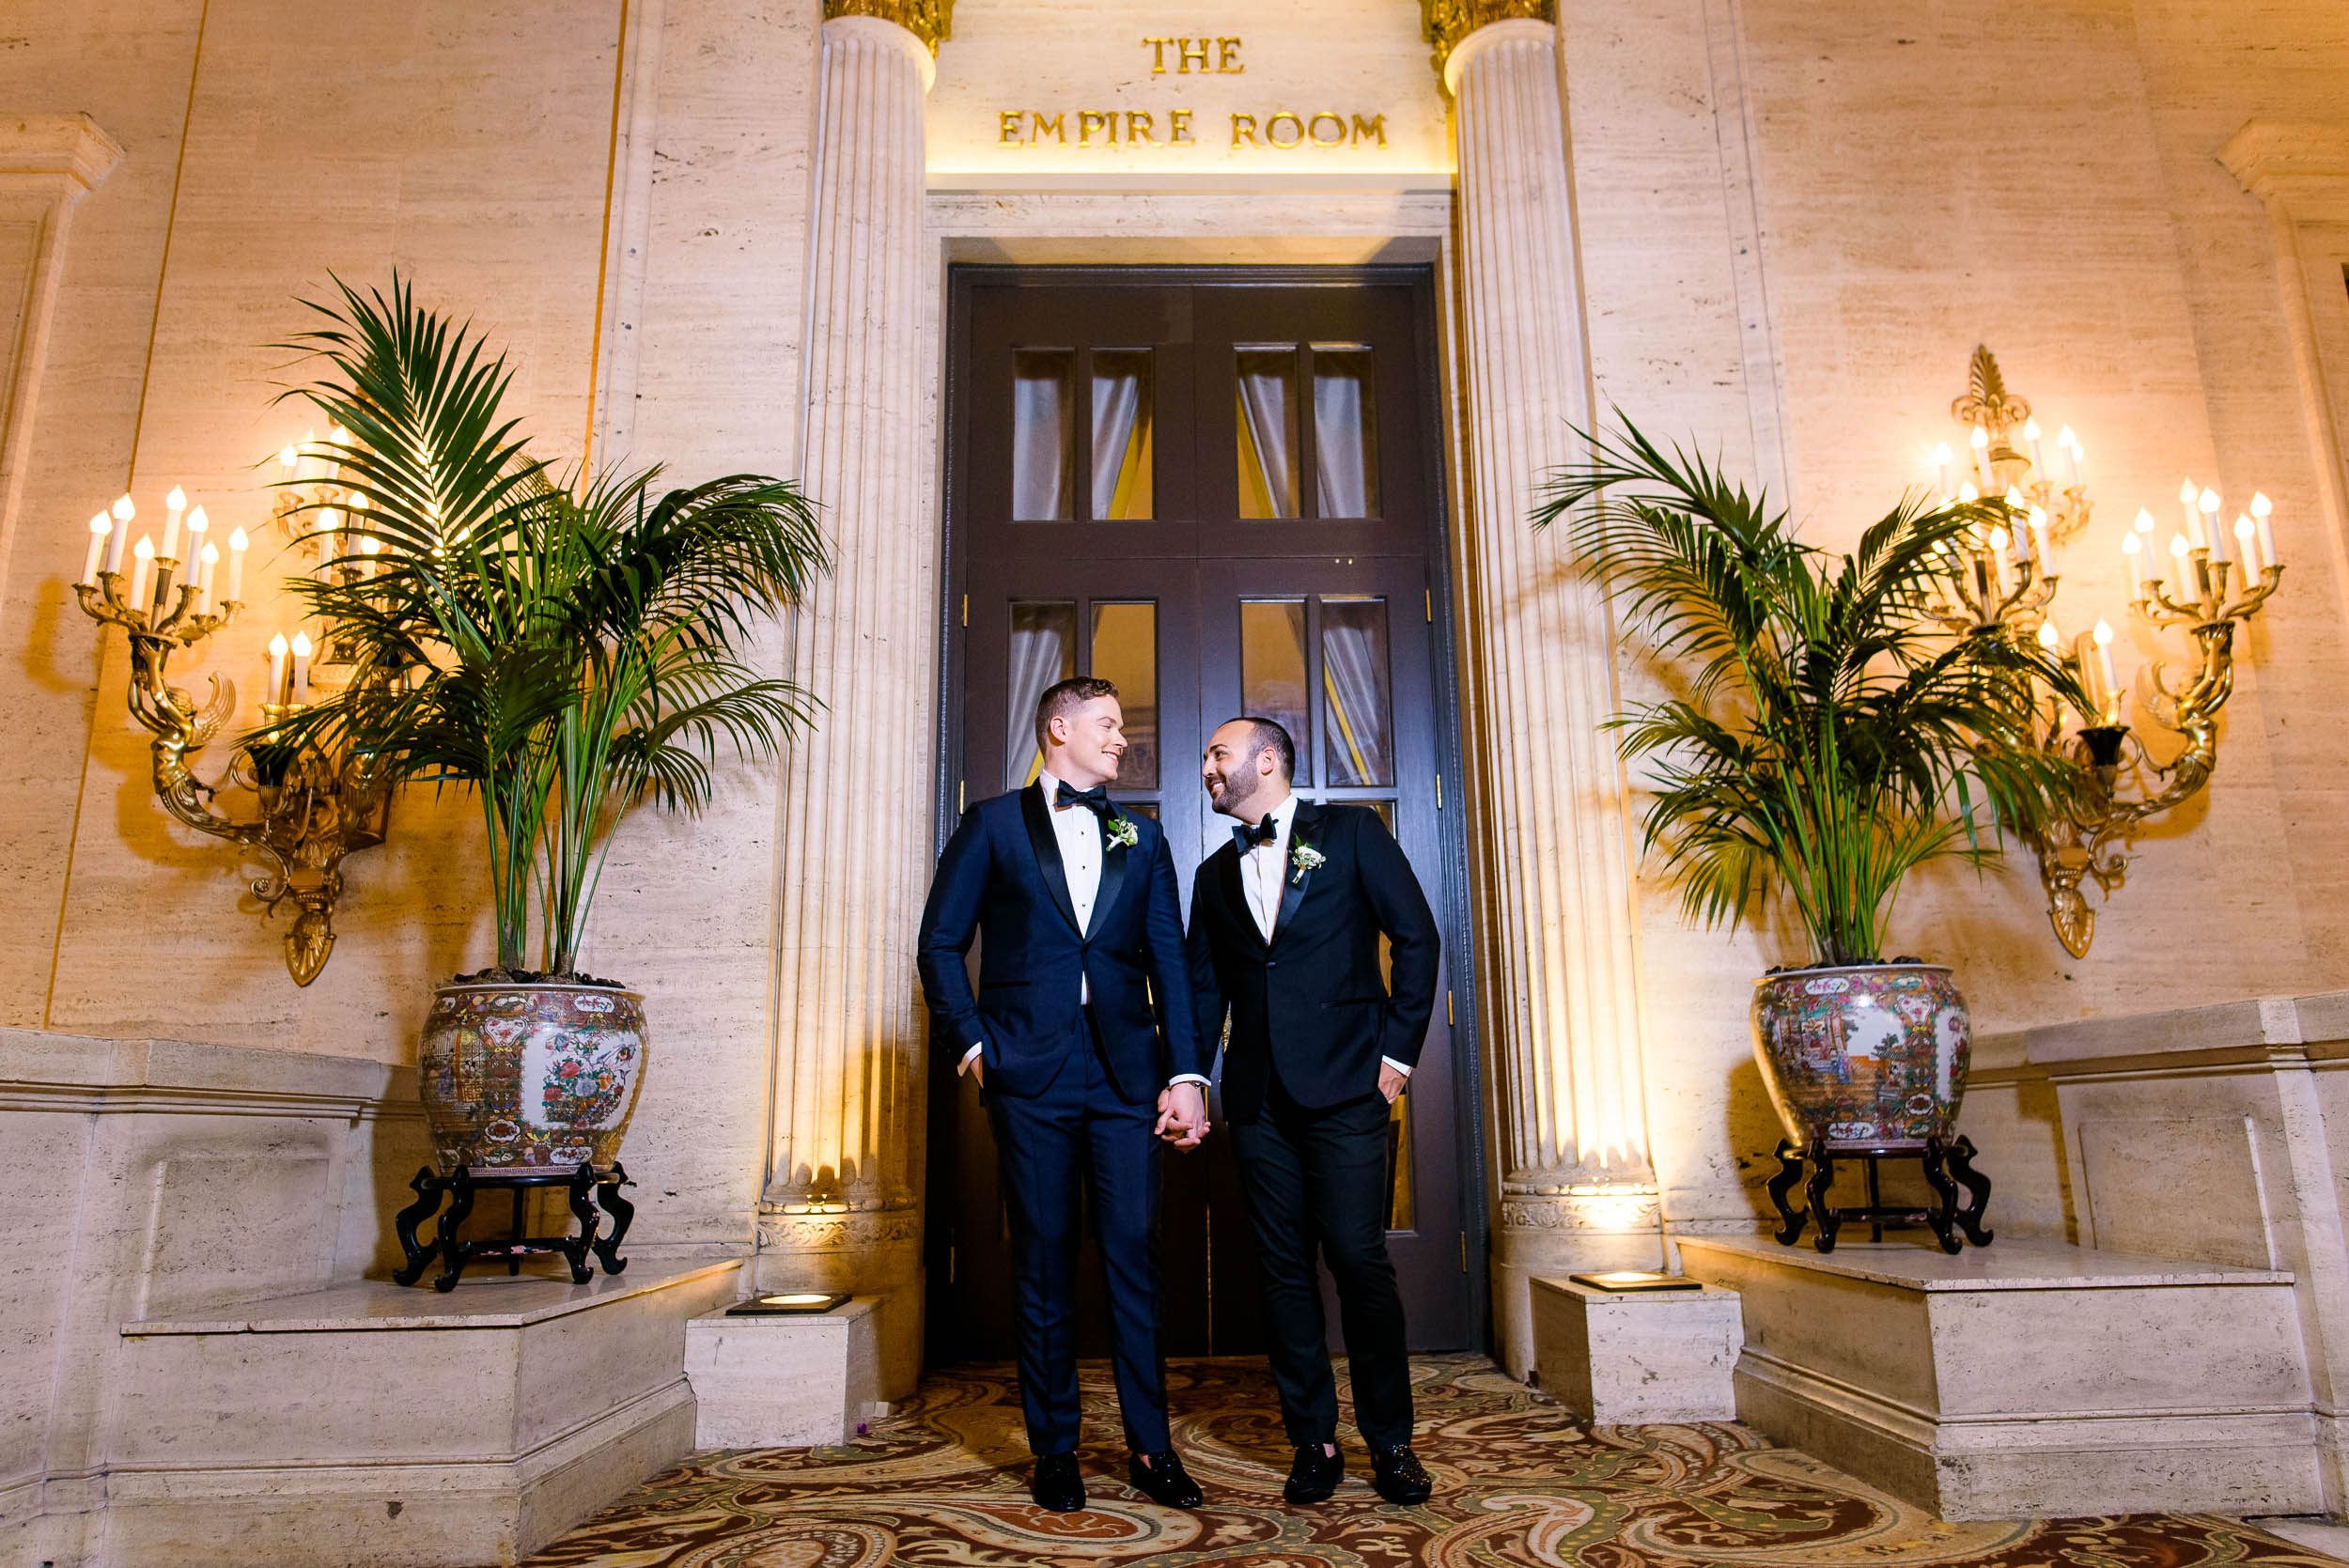 Stylish wedding tuxedos for luxurious fall wedding at the Chicago Symphony Center captured by J. Brown Photography. See more wedding ideas at jbrownphotography.com!